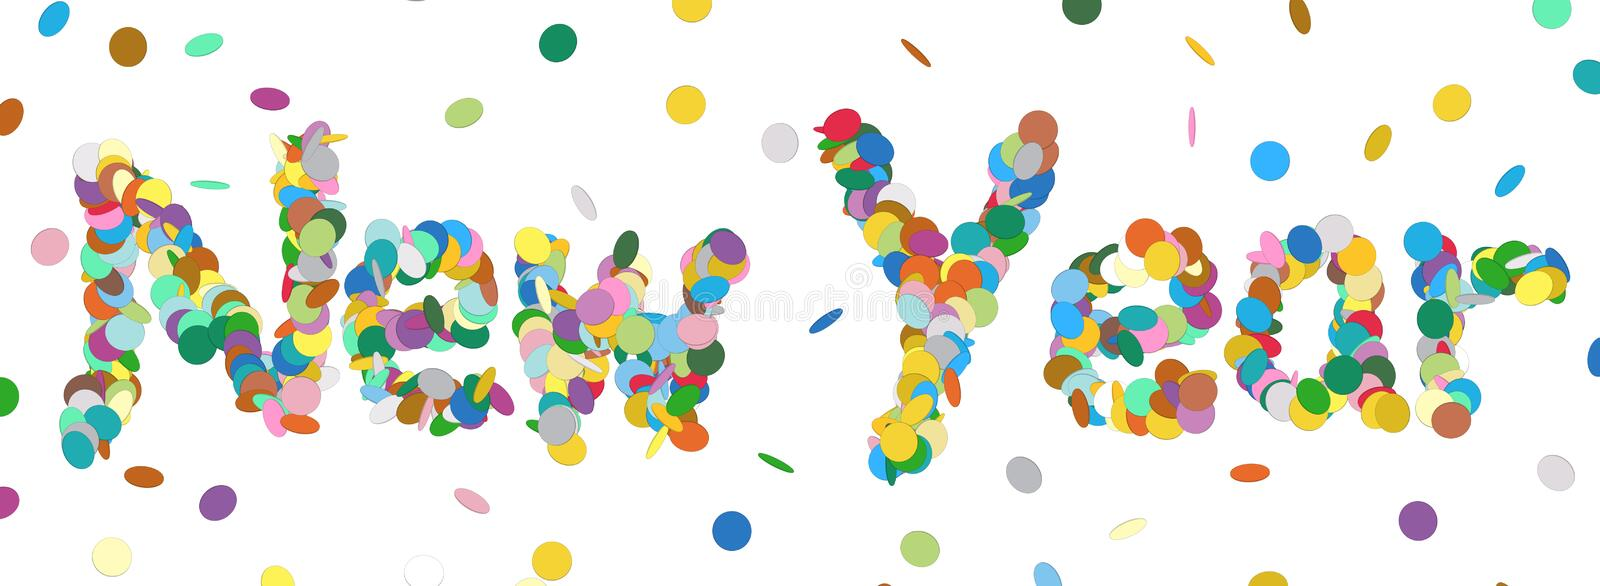 Abstract Confetti Word - New Year Letter - Colorful Panorama Vec vector illustration